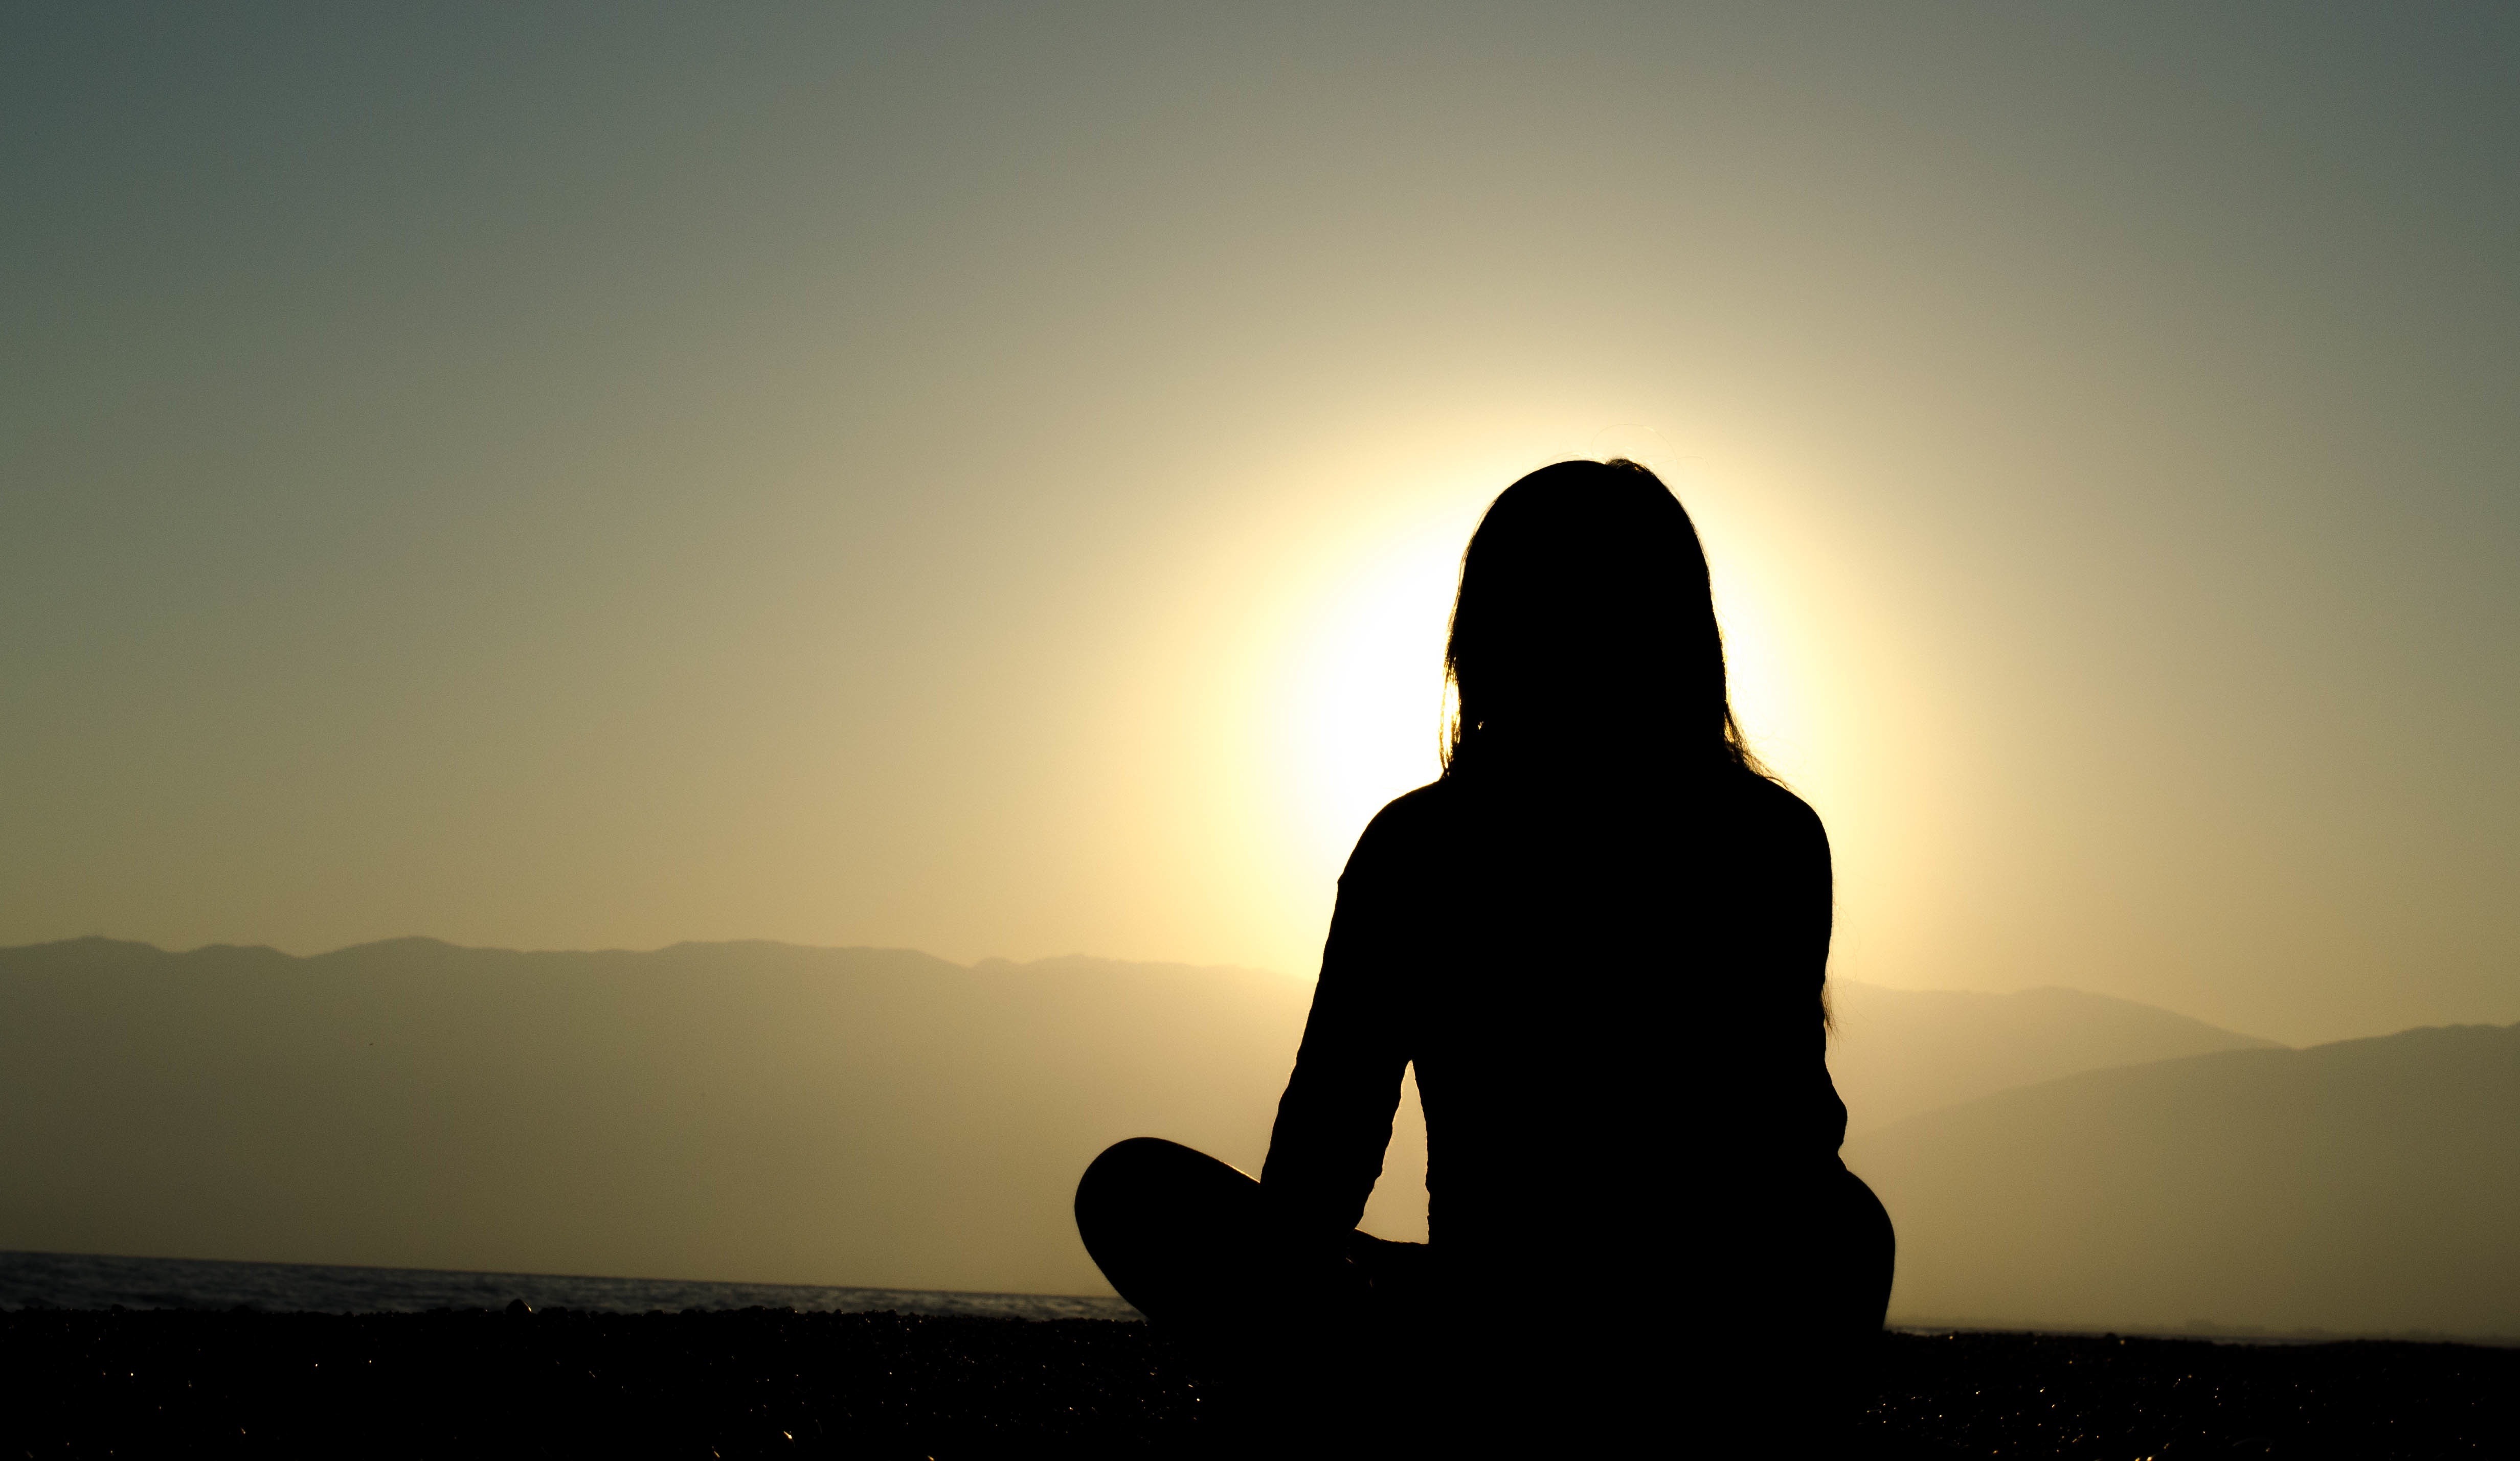 A solitary figure meditating on mountain top